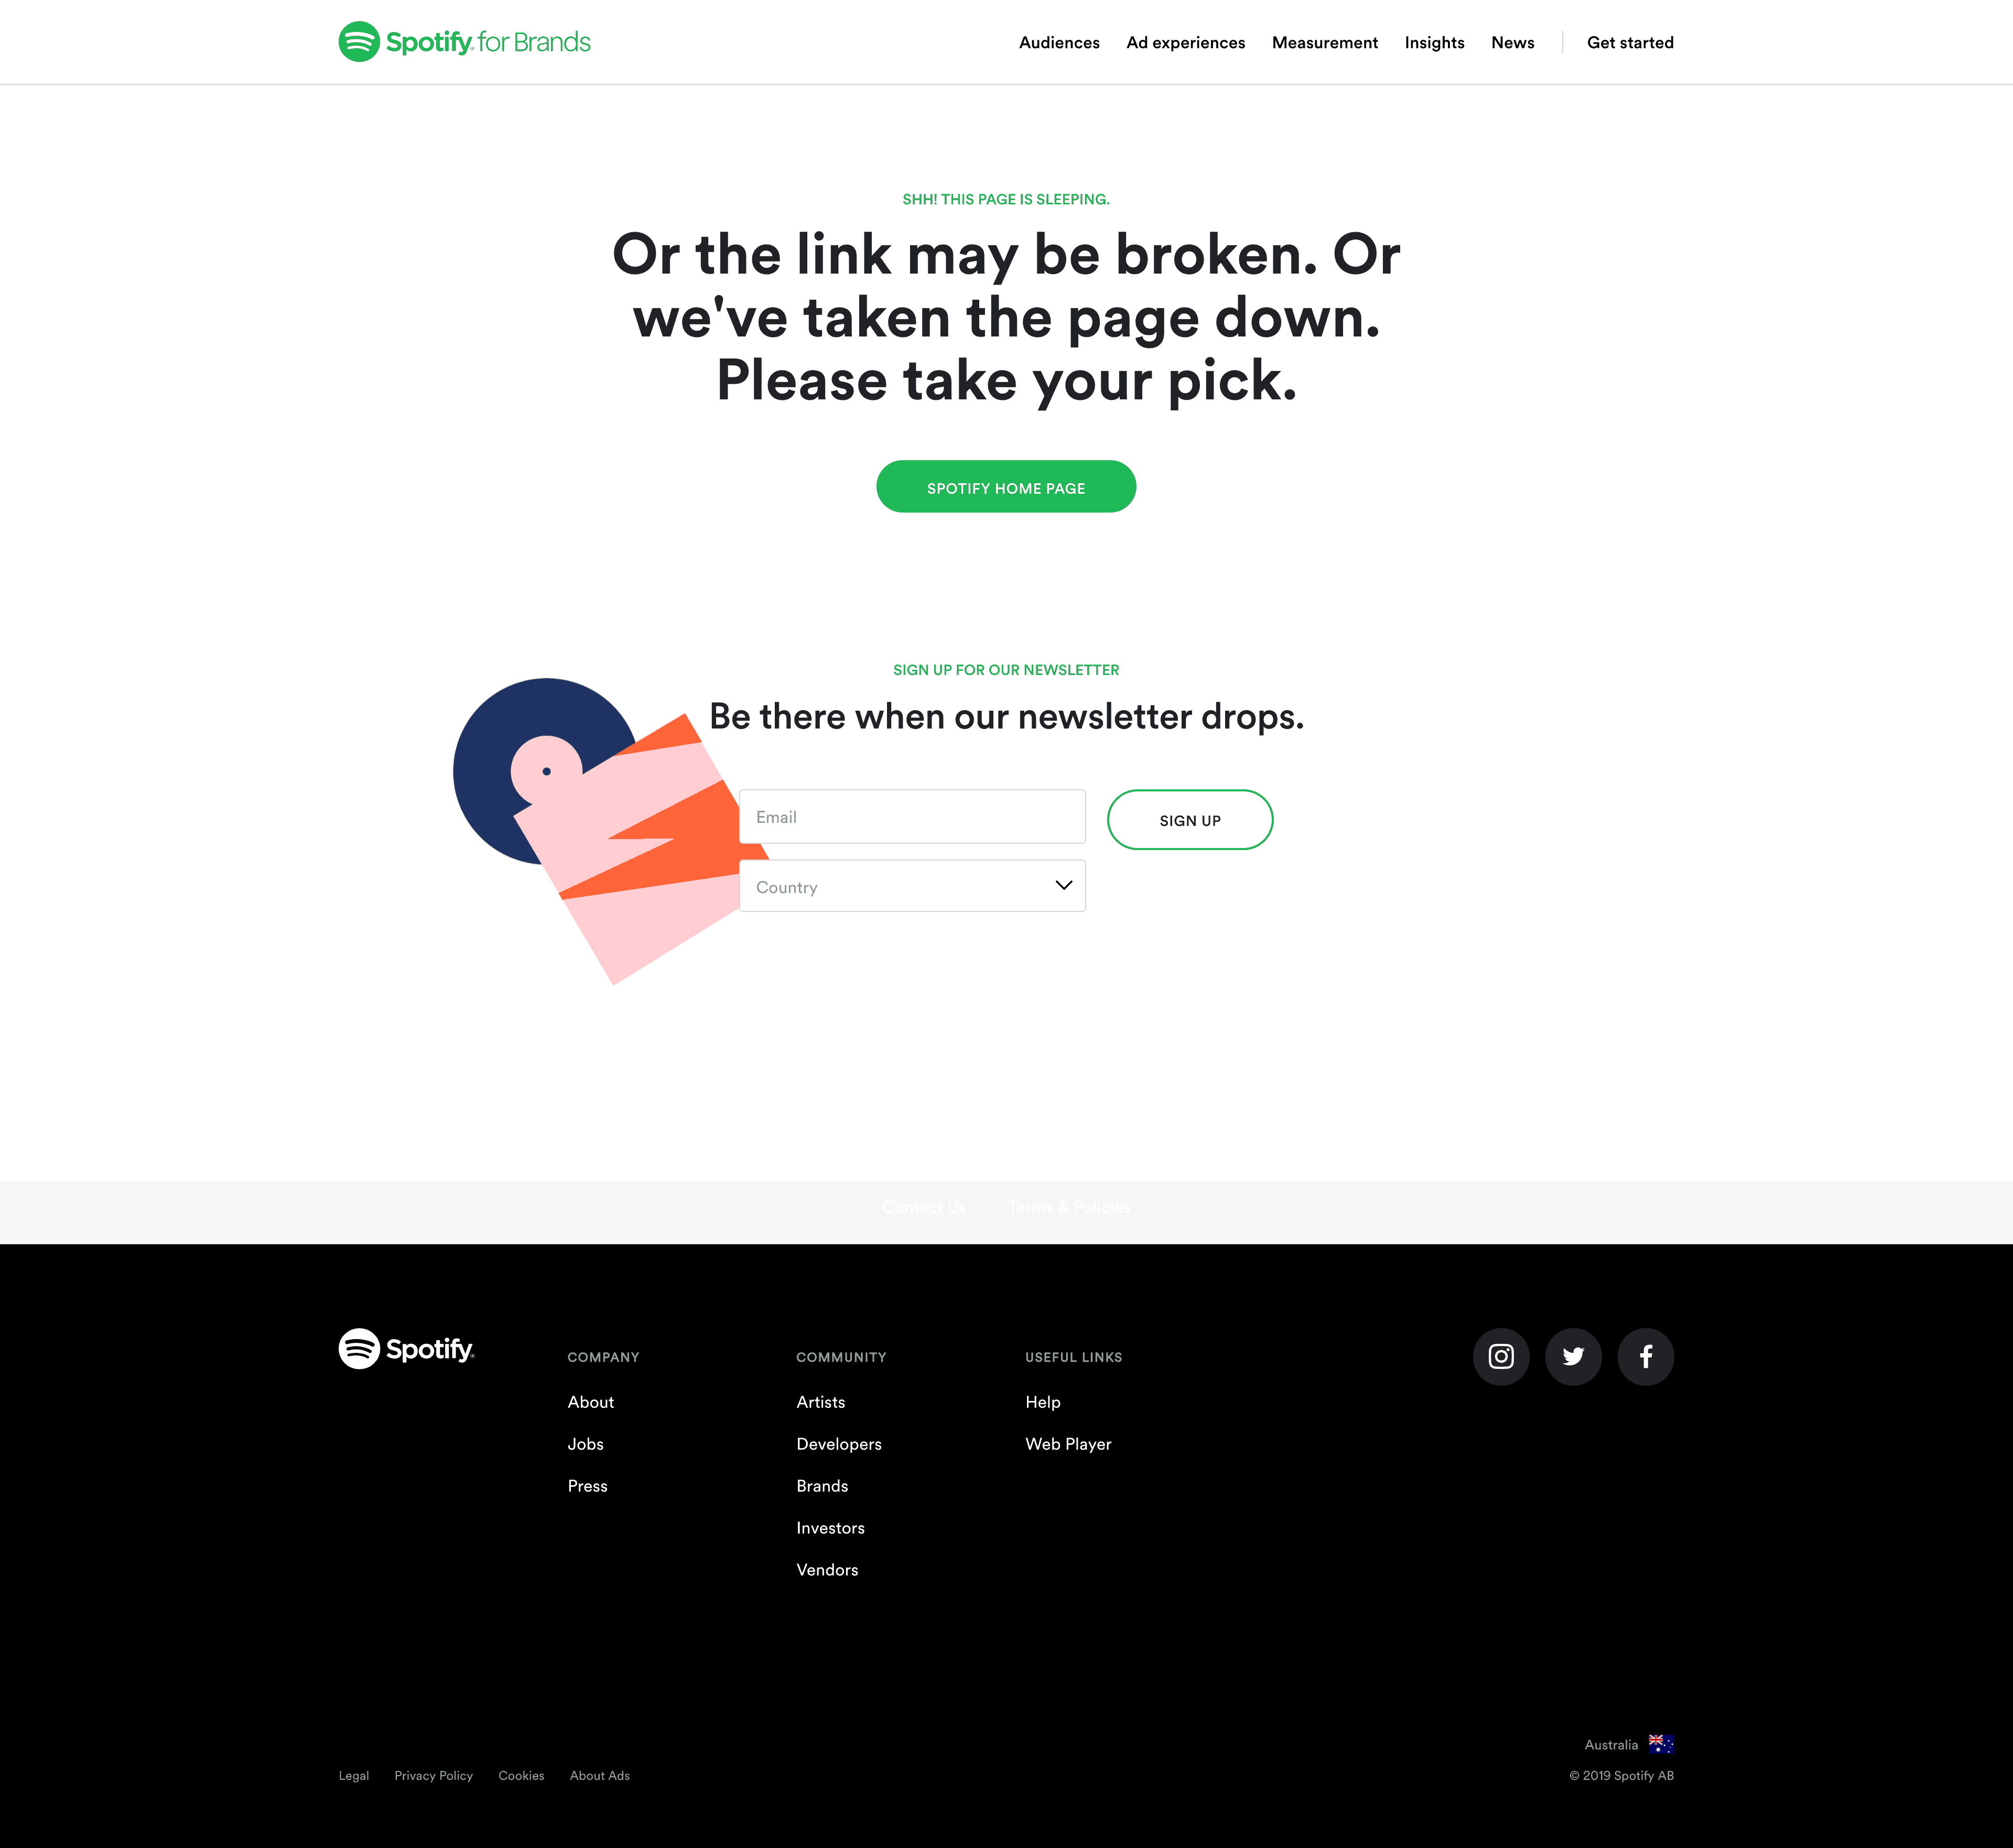 404 Error Page by Spotify for Brands